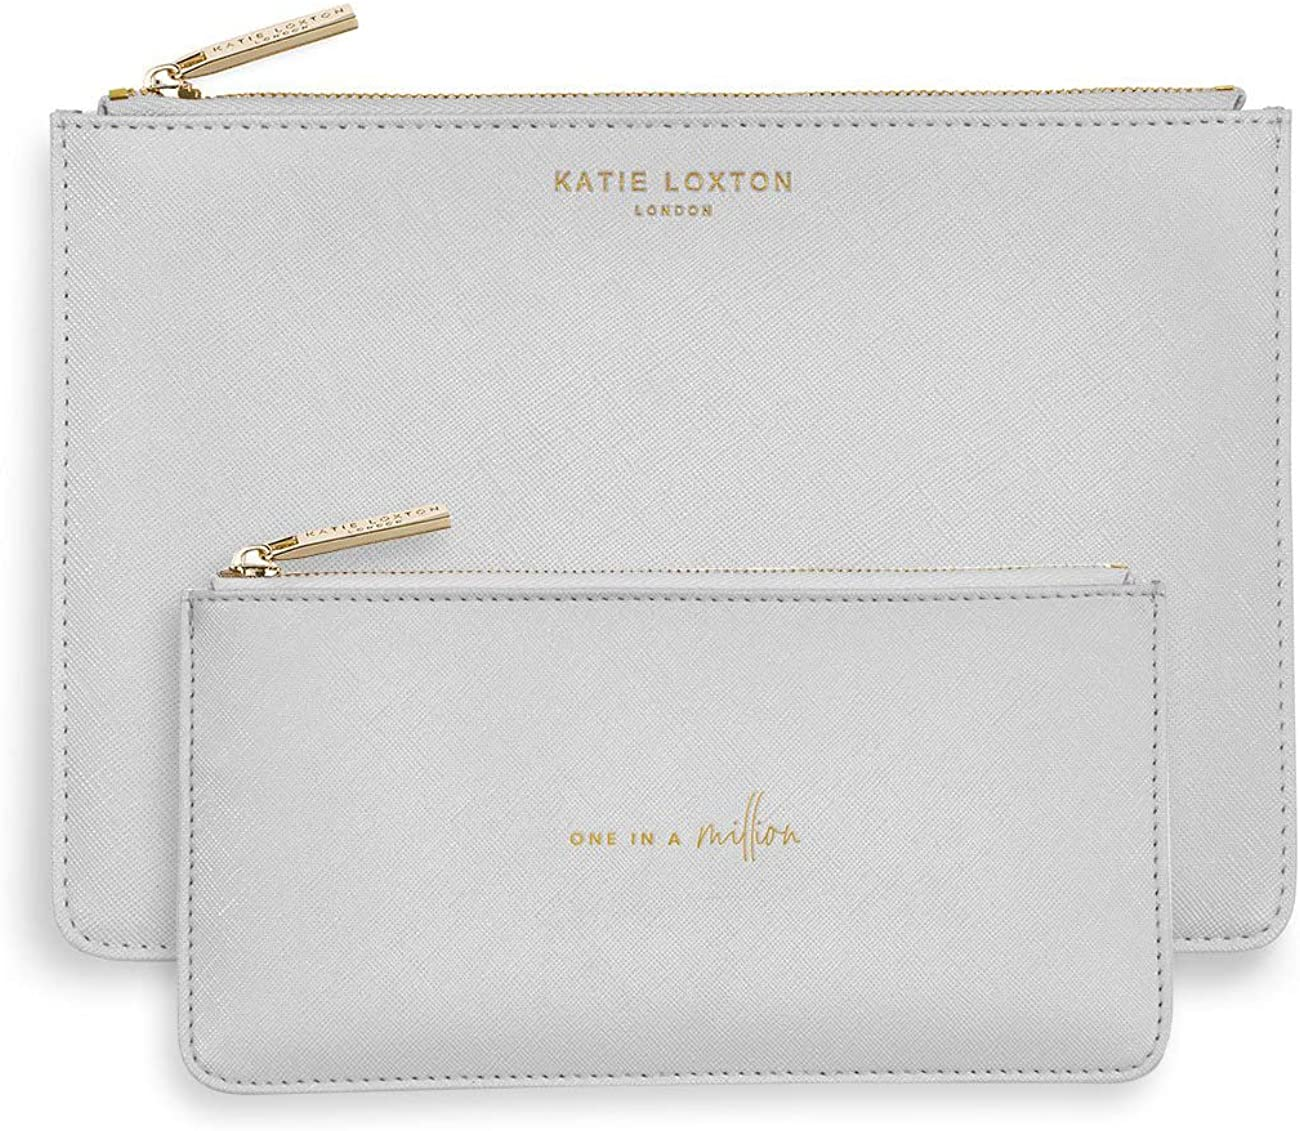 Katie Loxton One In A Million Womens Large & Slim Vegan Leather Clutch Perfect Pouch Boxed 2 Piece Set Pale Grey